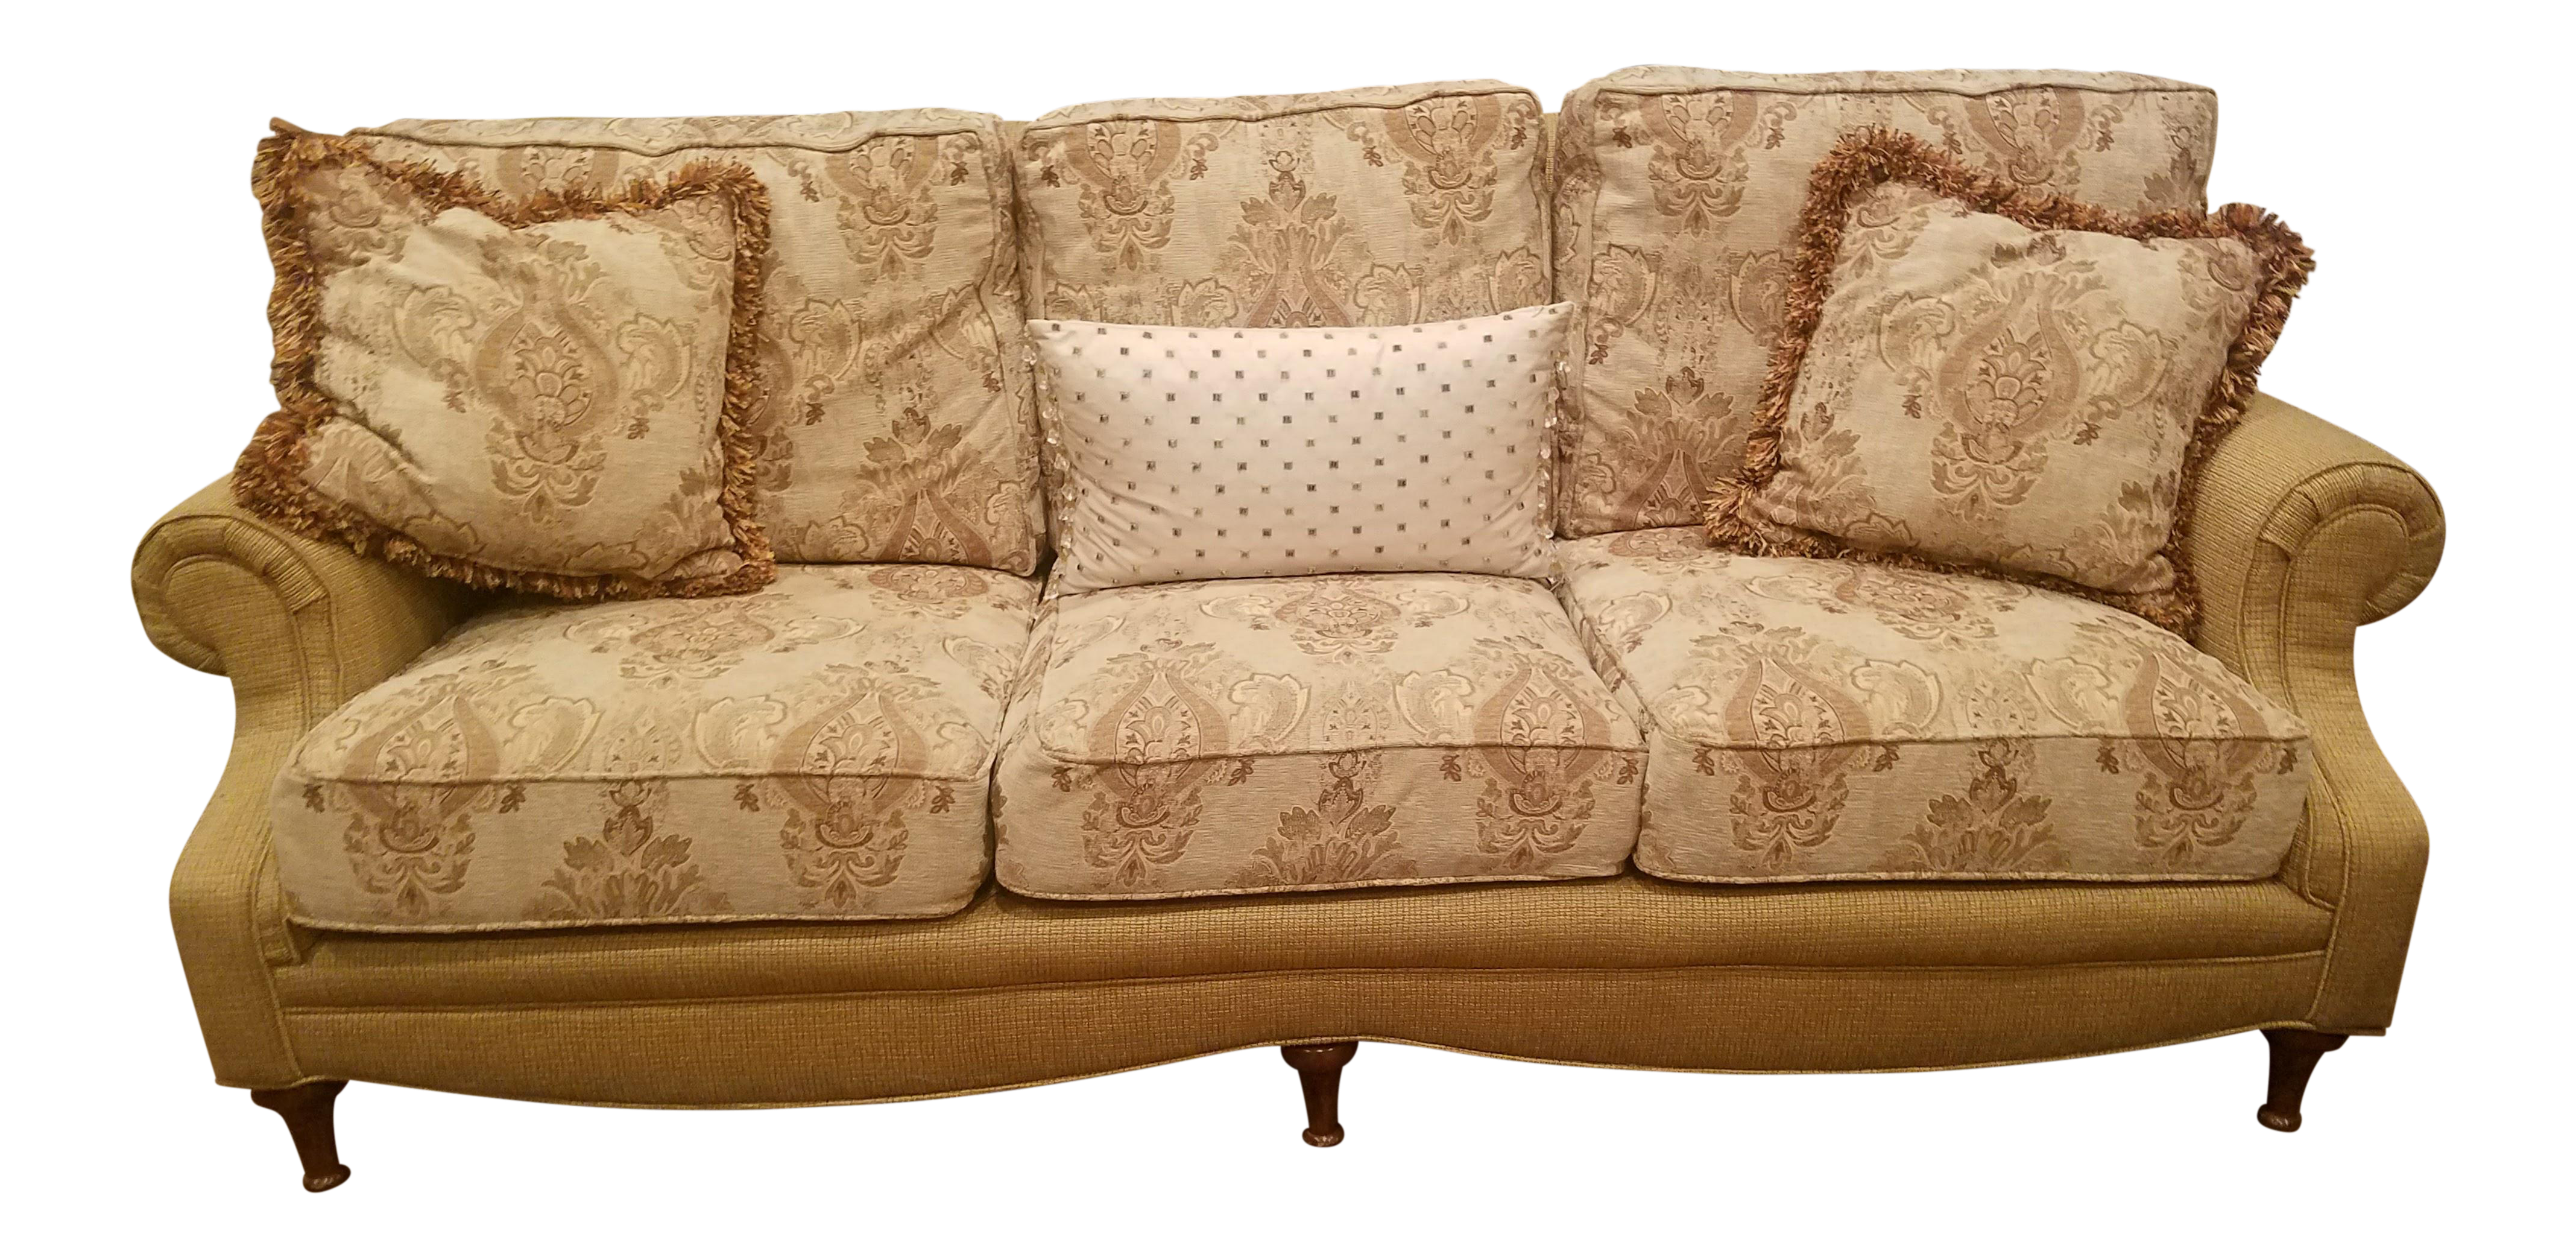 Delicieux Harden French Country Upholstered Sofa